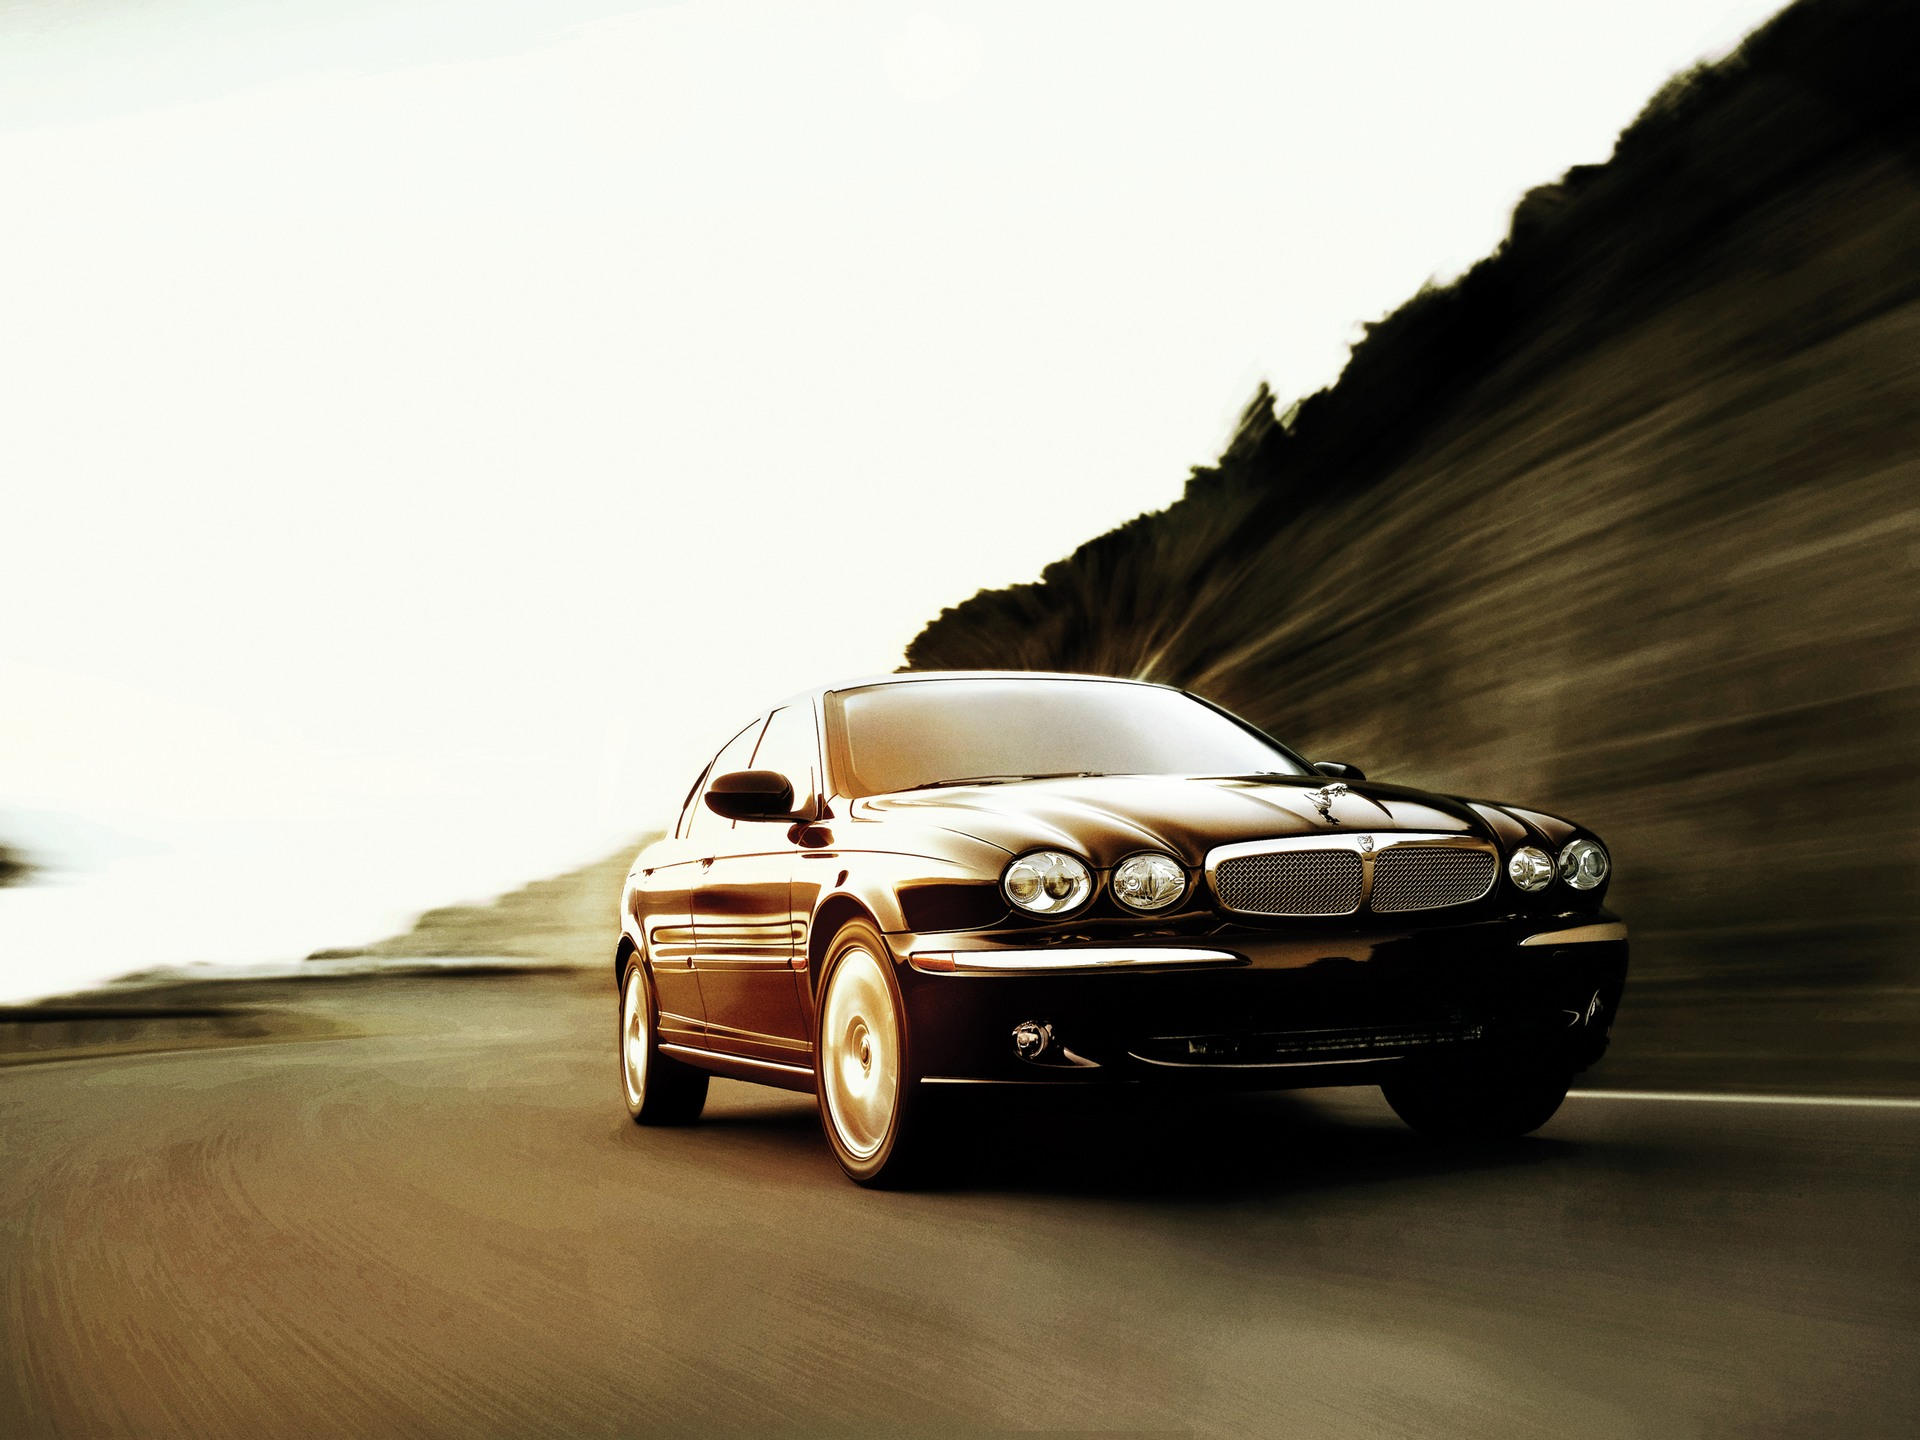 2008 Jaguar X-Type News and Information | conceptcarz.com